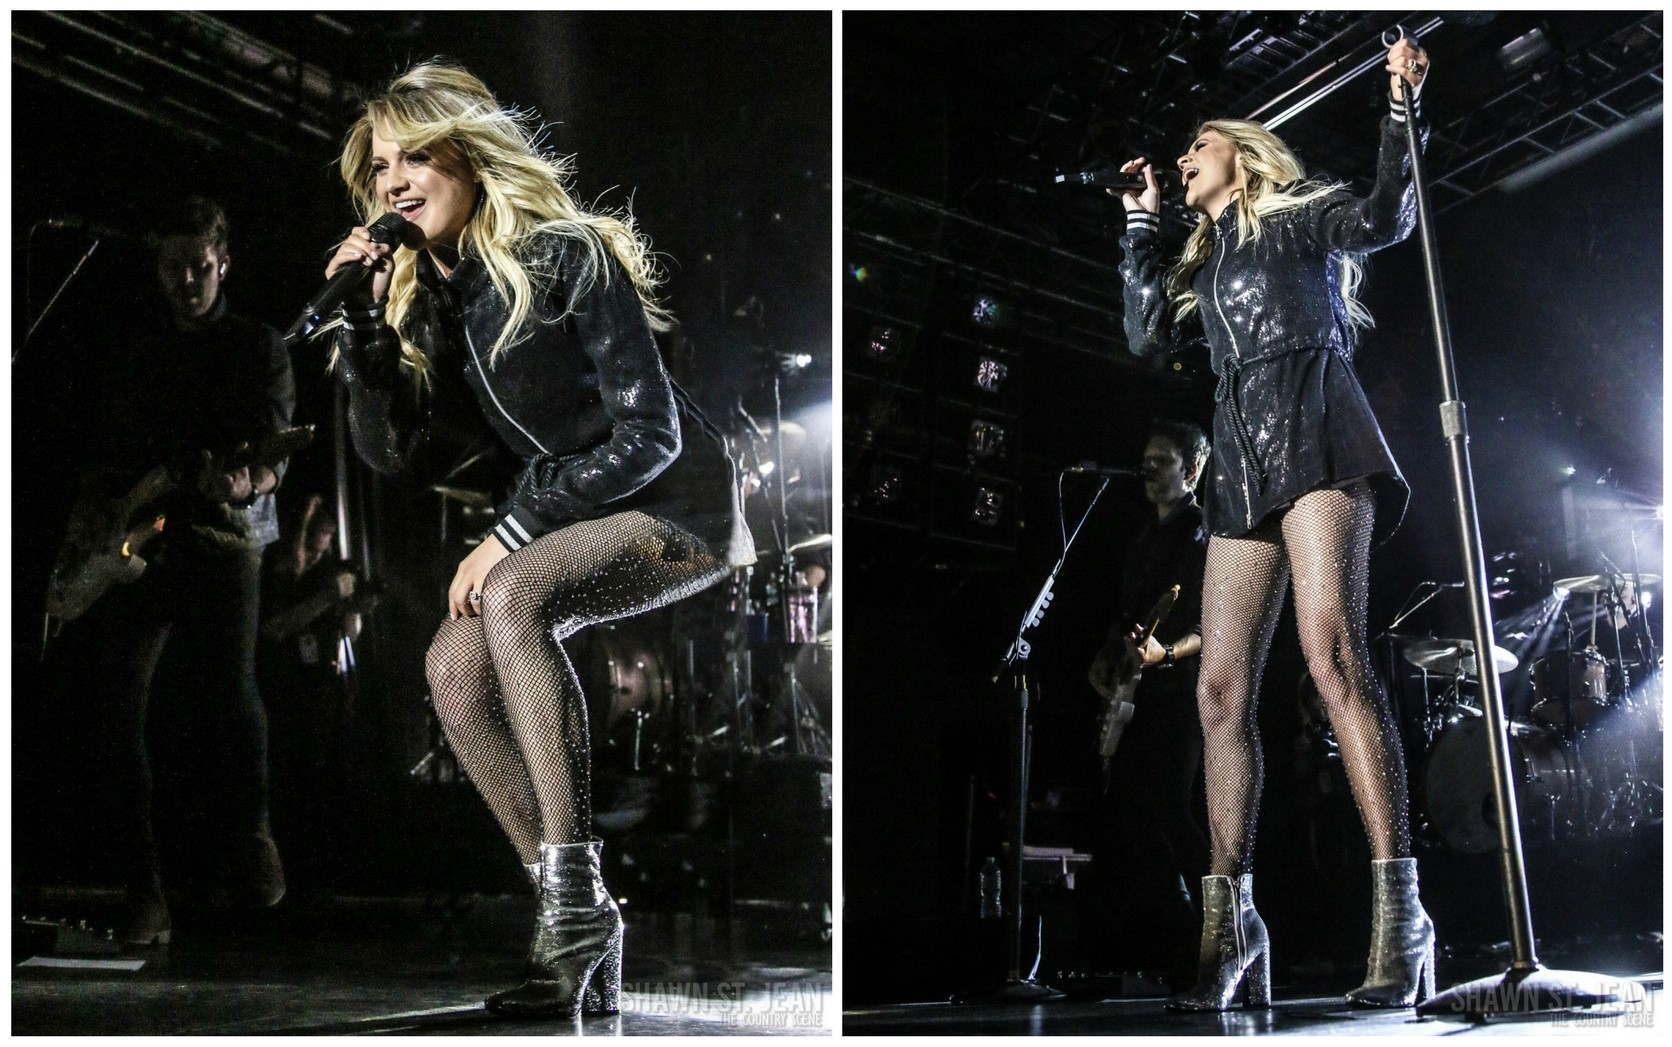 Kelsea Ballerini at PlayStation Theater on April 5, 2018 / Photos by Shawn St. Jean